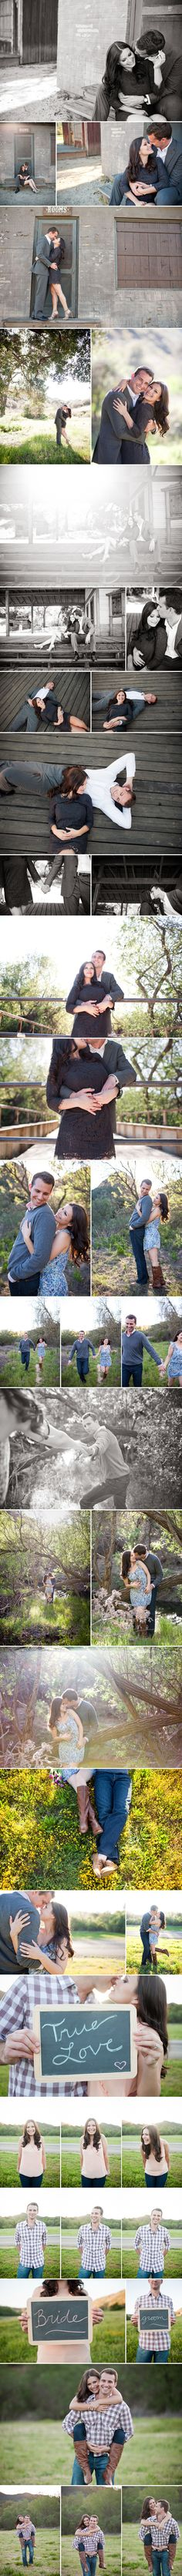 Melanie + Charlie: Southern California Engagement Session by Marianne Wilson Photography (PS This is the gal who will be photographing my sister's wedding!)